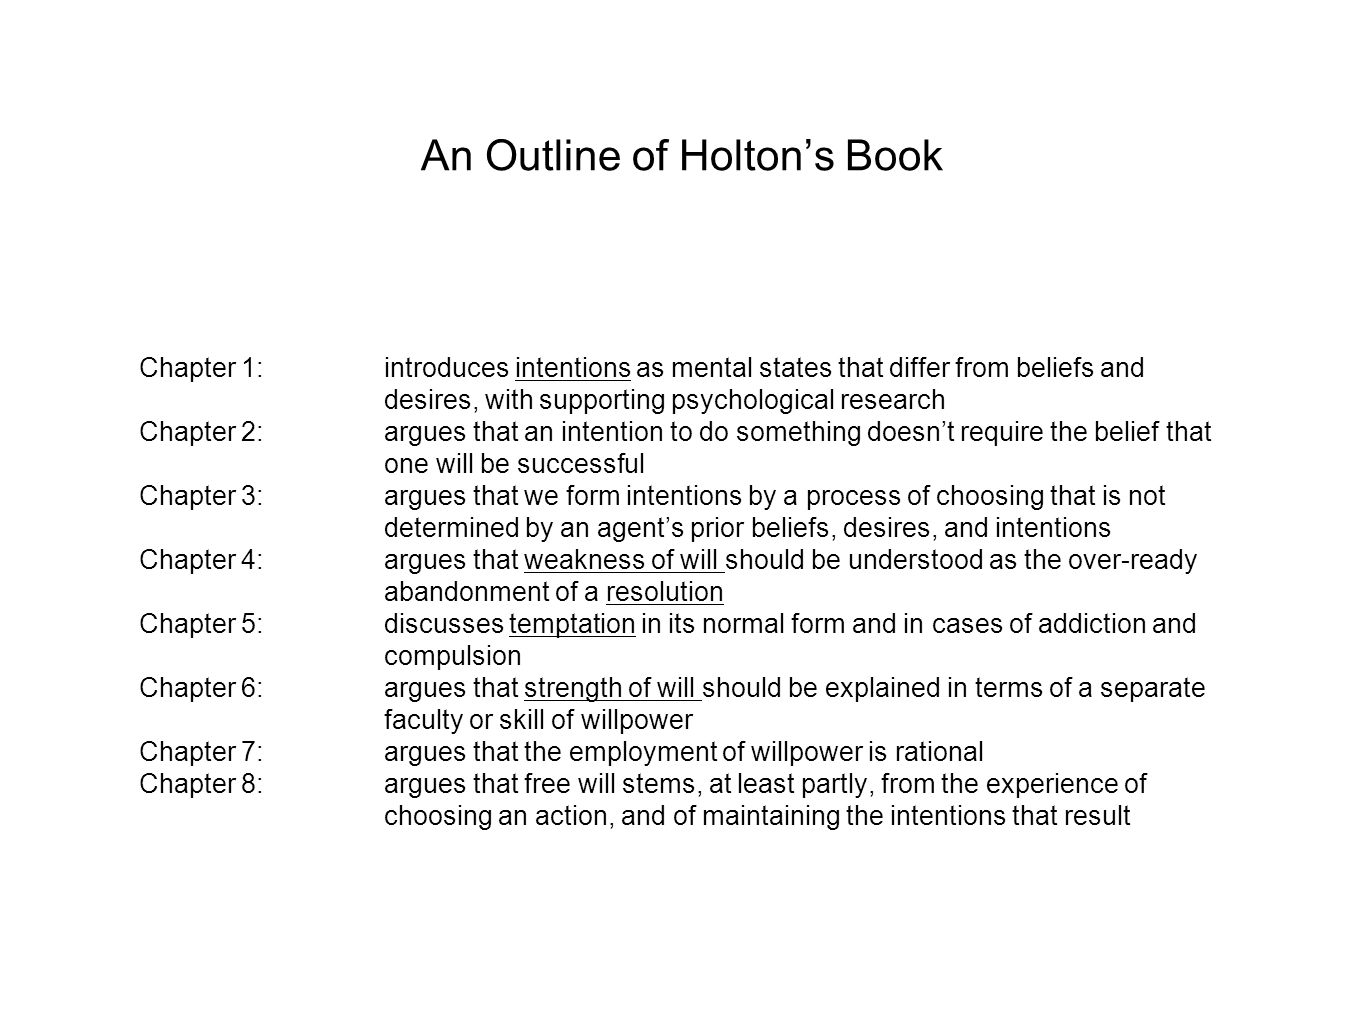 An Outline of Holton's Book